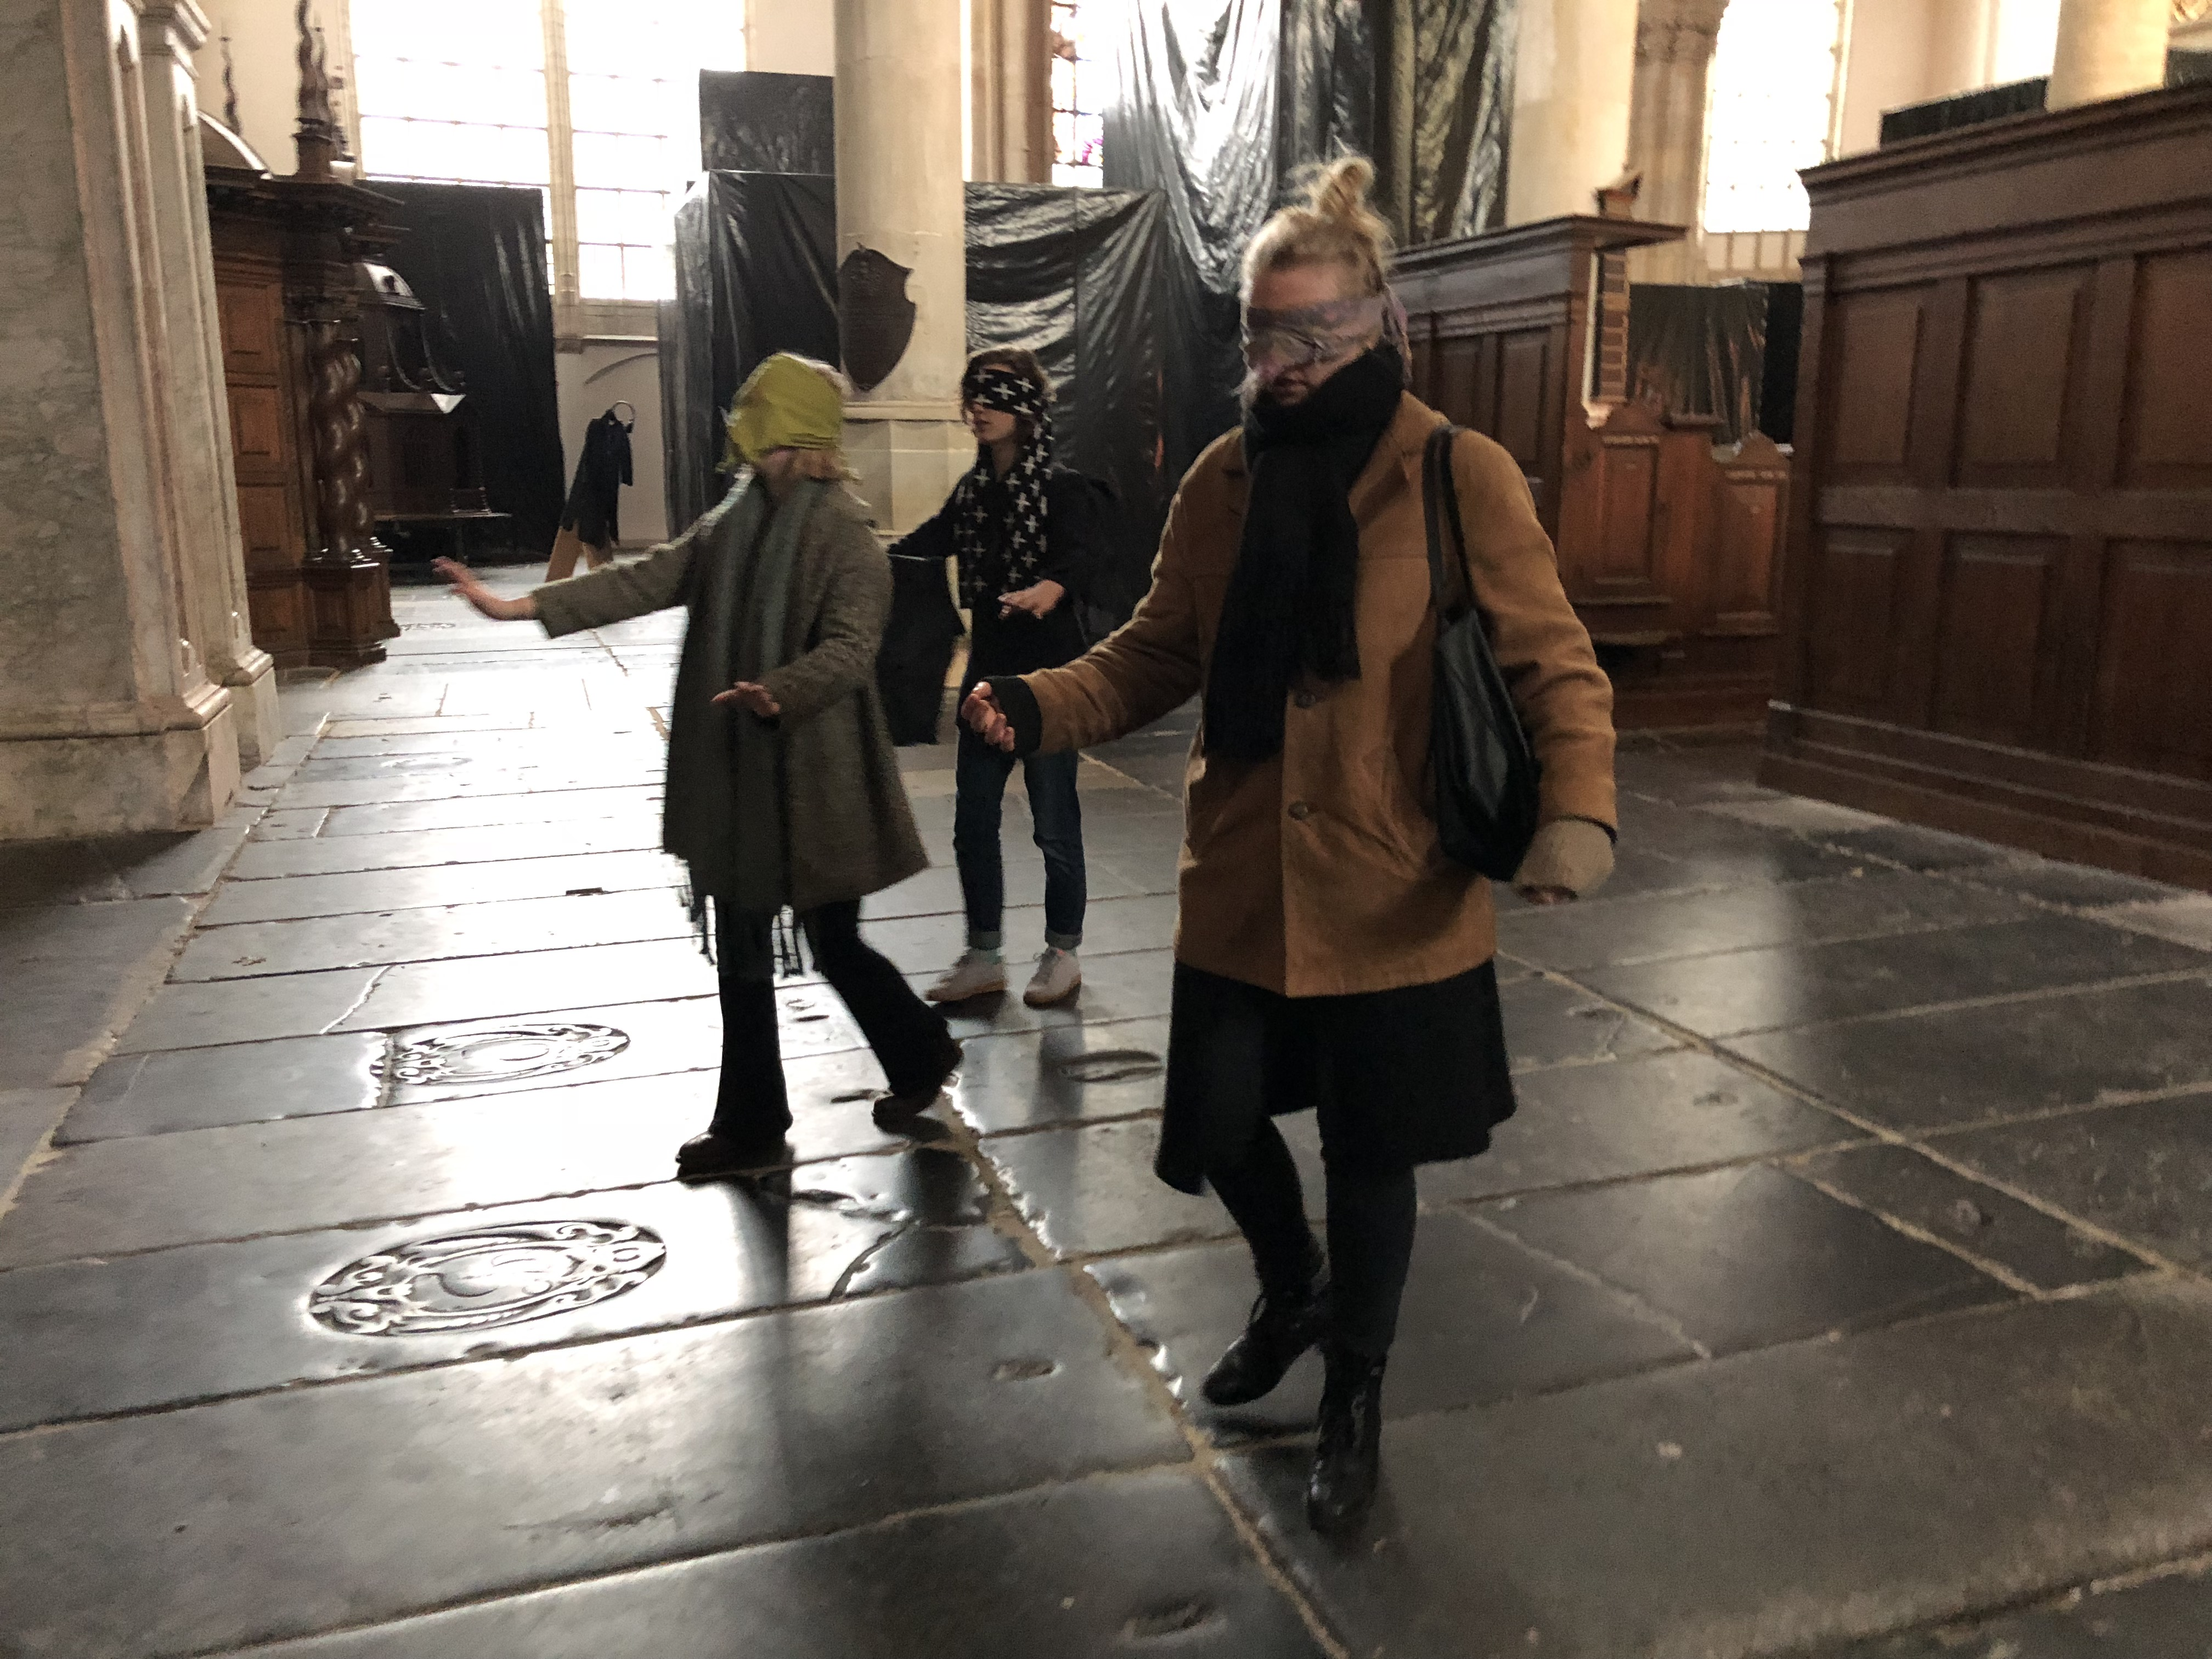 'Haptic' workshop with students from the Theaterschool in Amsterdam (2018)